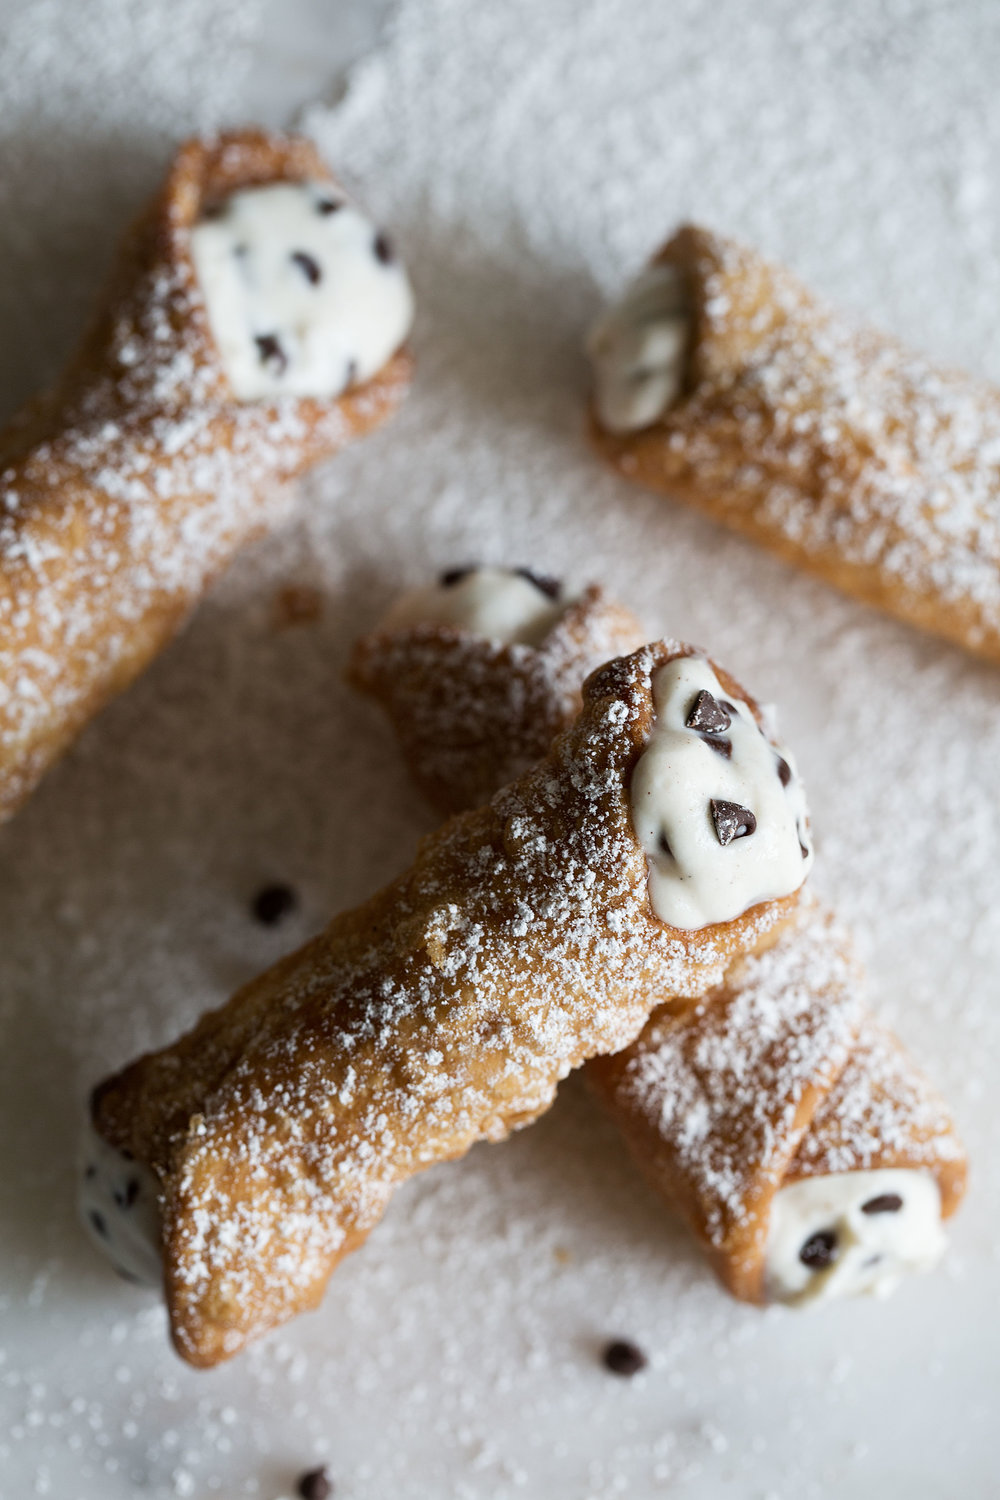 homemade-cannolis.jpg